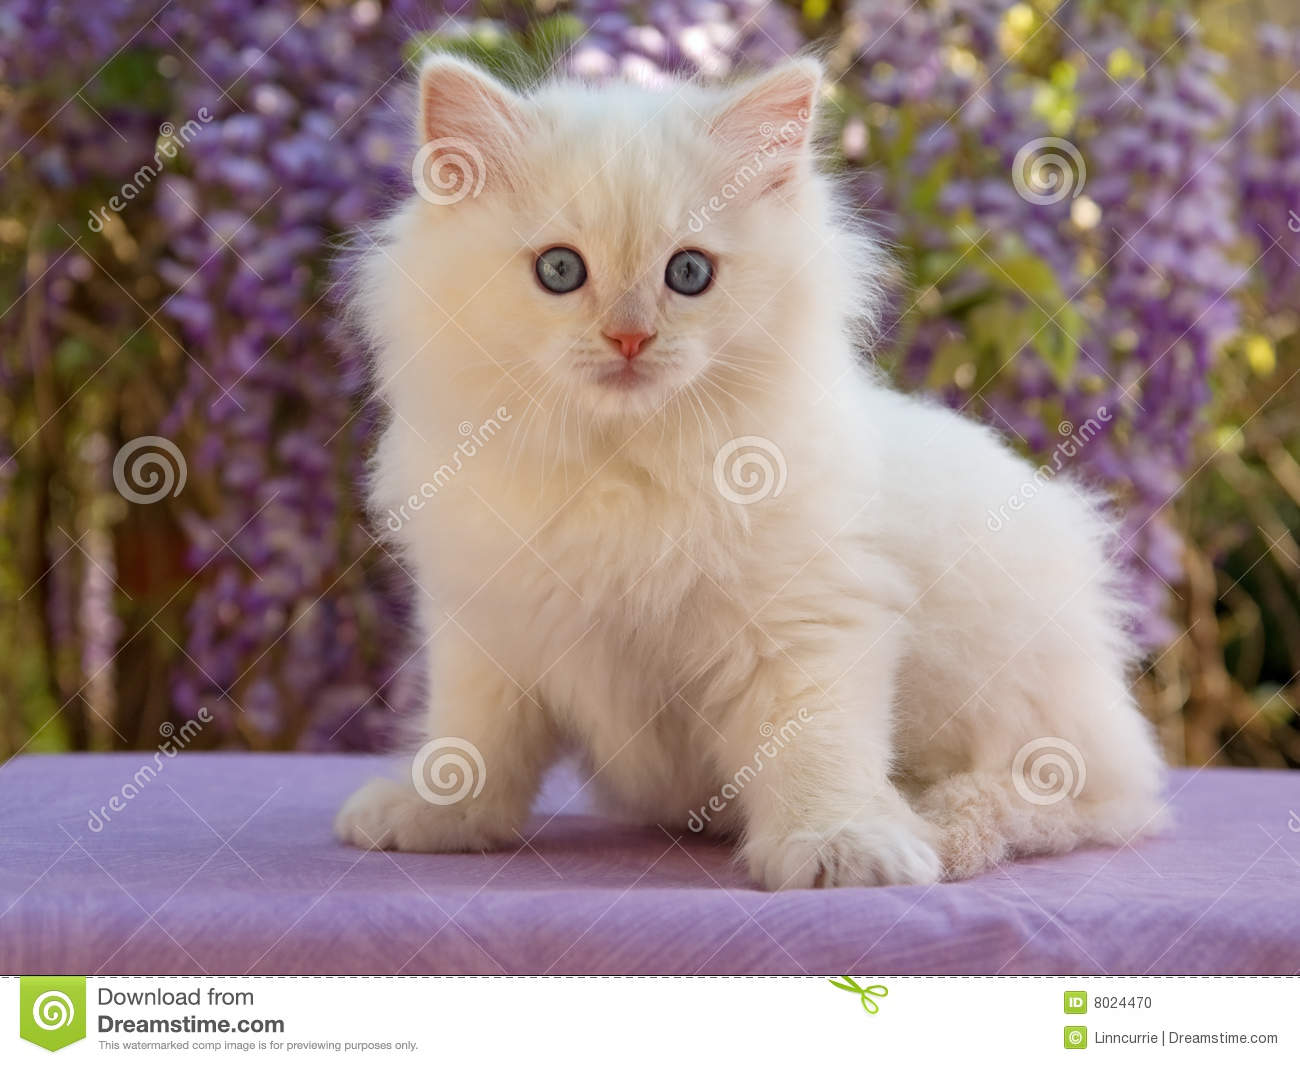 Cute Ragdoll kitten sitting in front of flowers